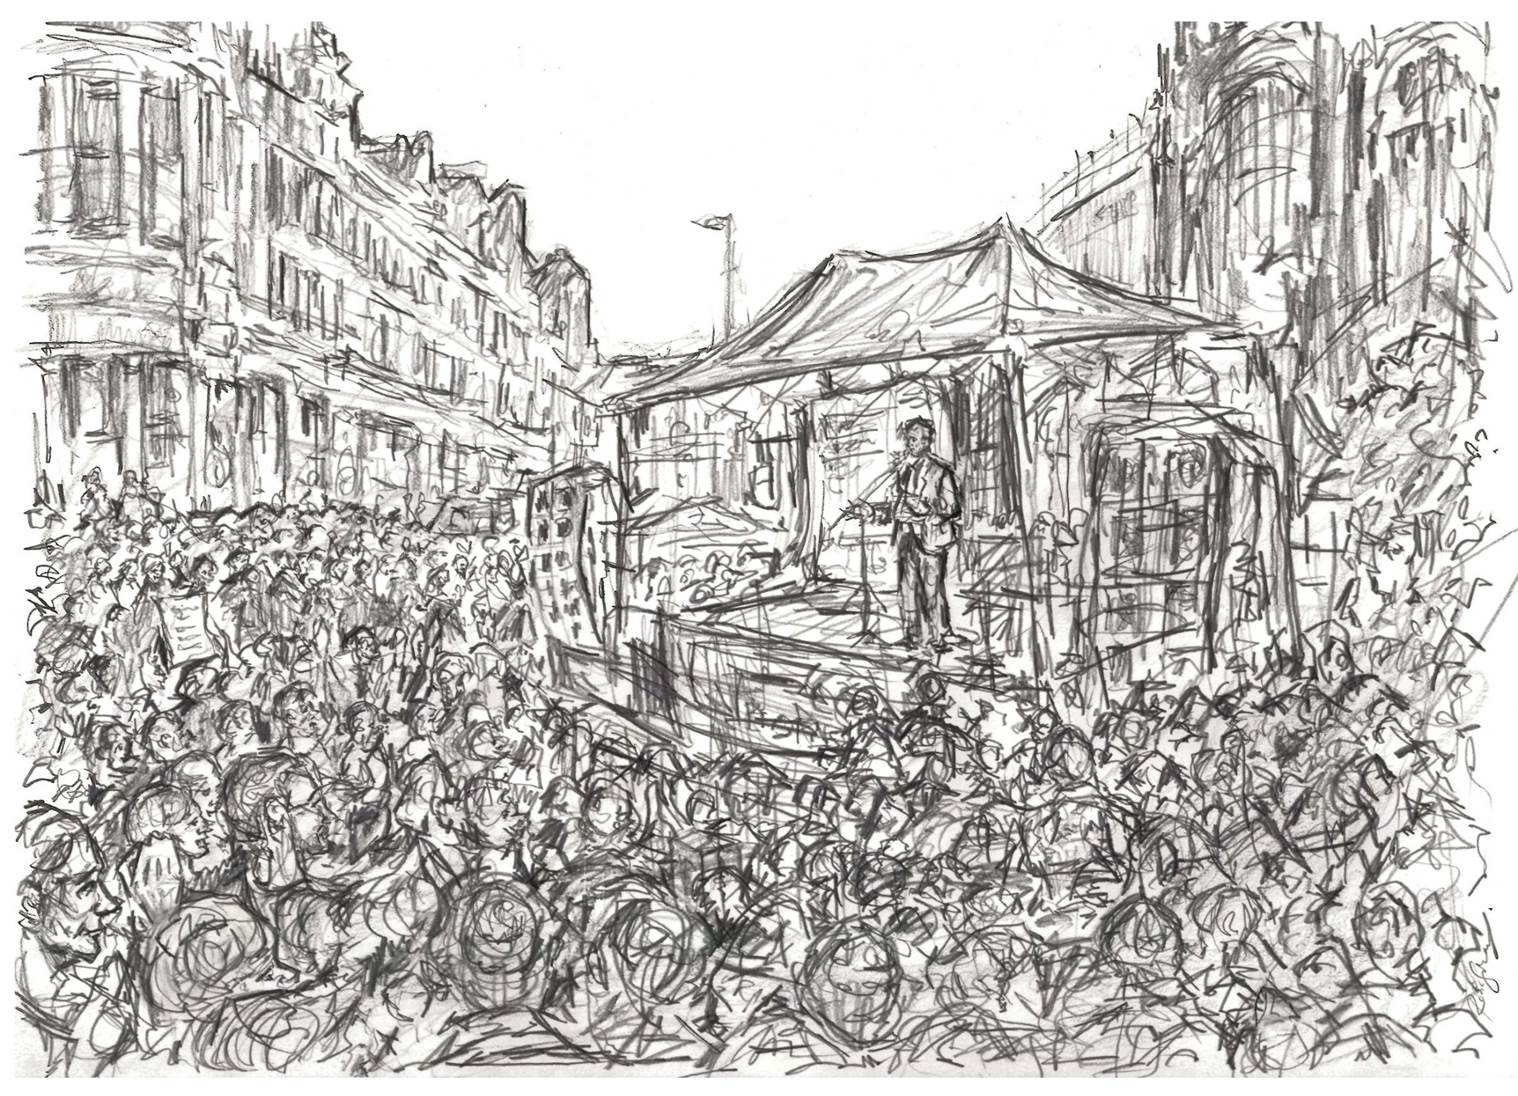 STUDENT & GRADUATE PRIZE: ROBIN SUKATORN    'Jeremy Corbyn speaks in Manchester', graphite stick on paper. Robin Sukatorn, 2015  (SOLD) -   Read our interview with Robin